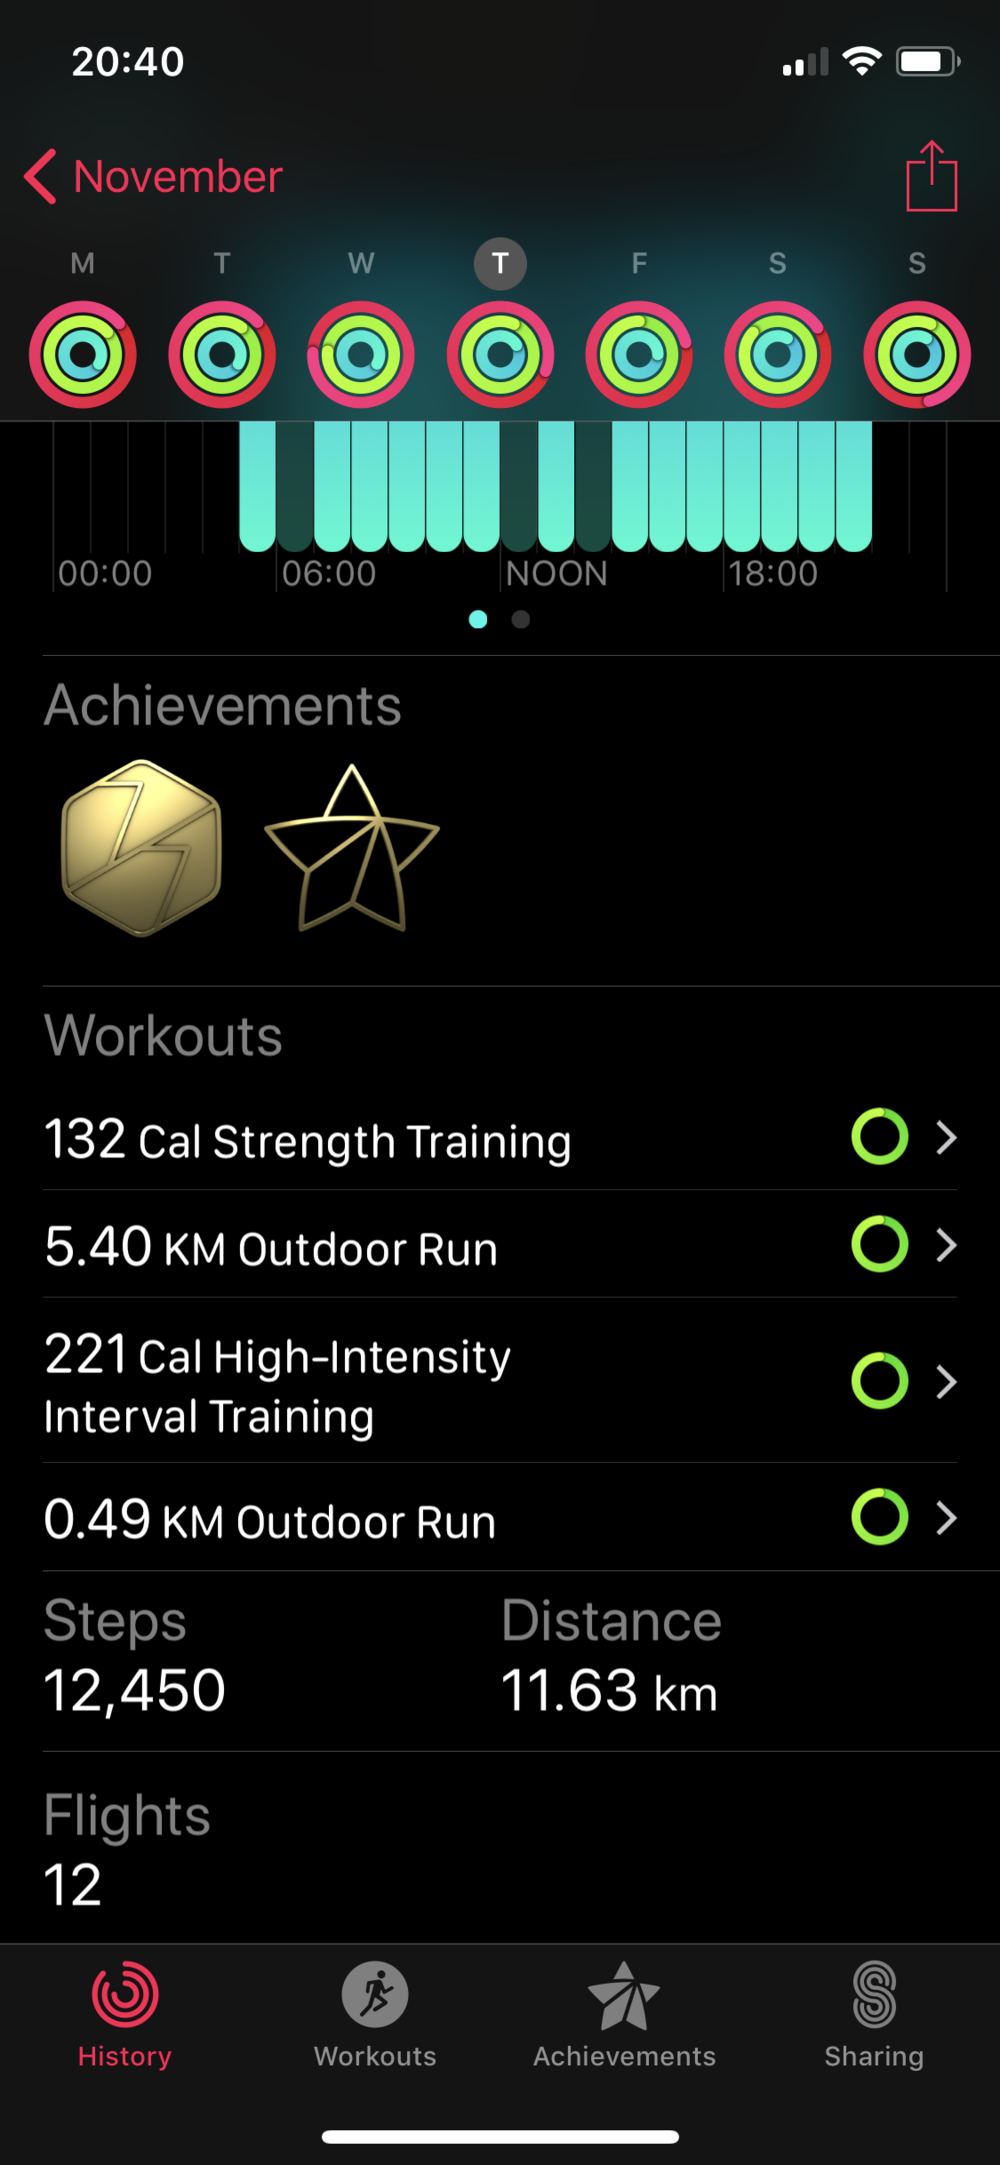 So What Exactly Is High Intensity Interval Training On Apple Watch Workouts Timers For Tabata Hiit And Circuit Are Included Summary